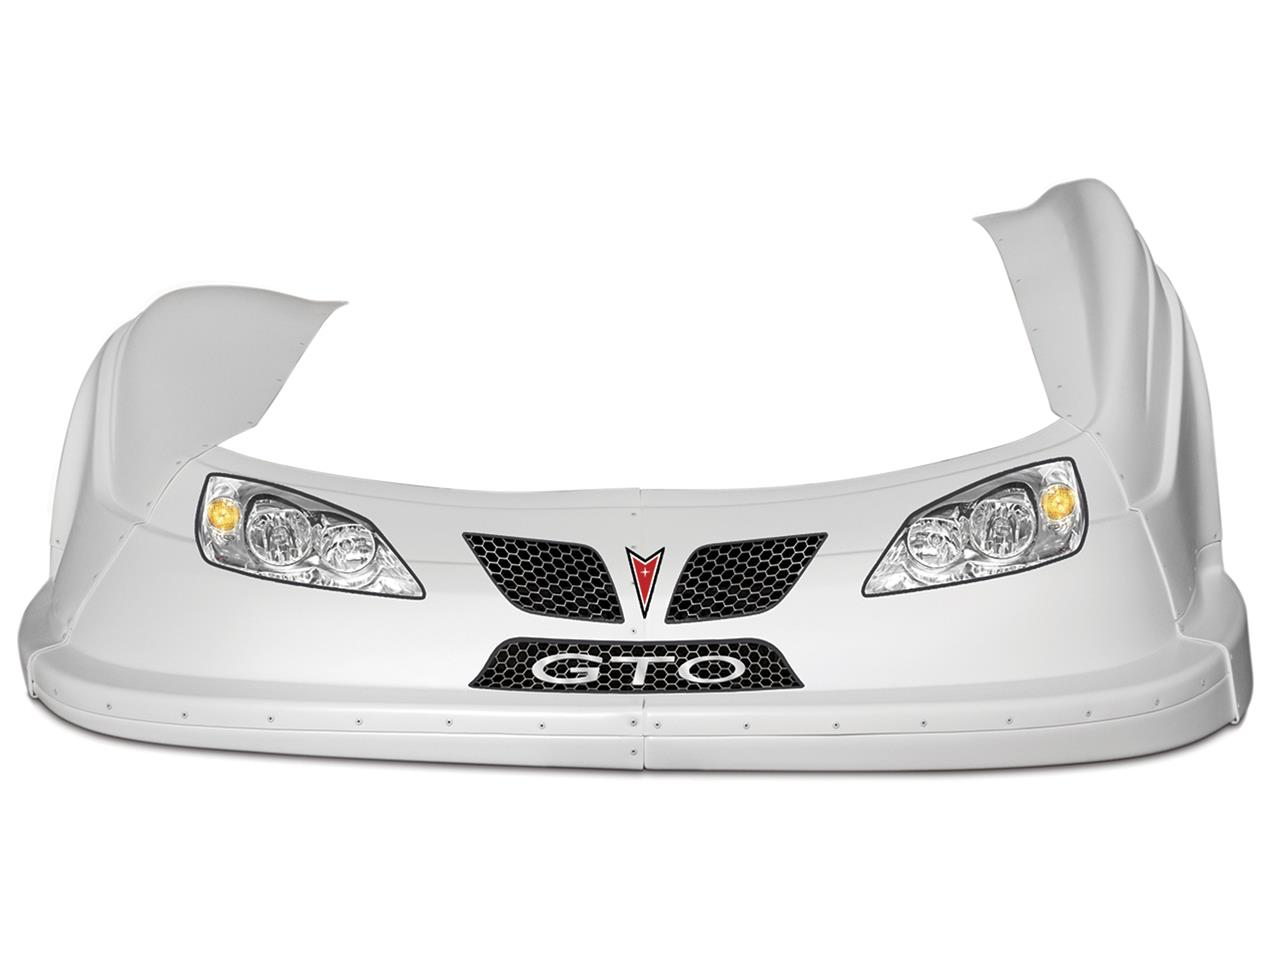 Picture of MD3 Evolution 2 Nose Kits - (GTO)